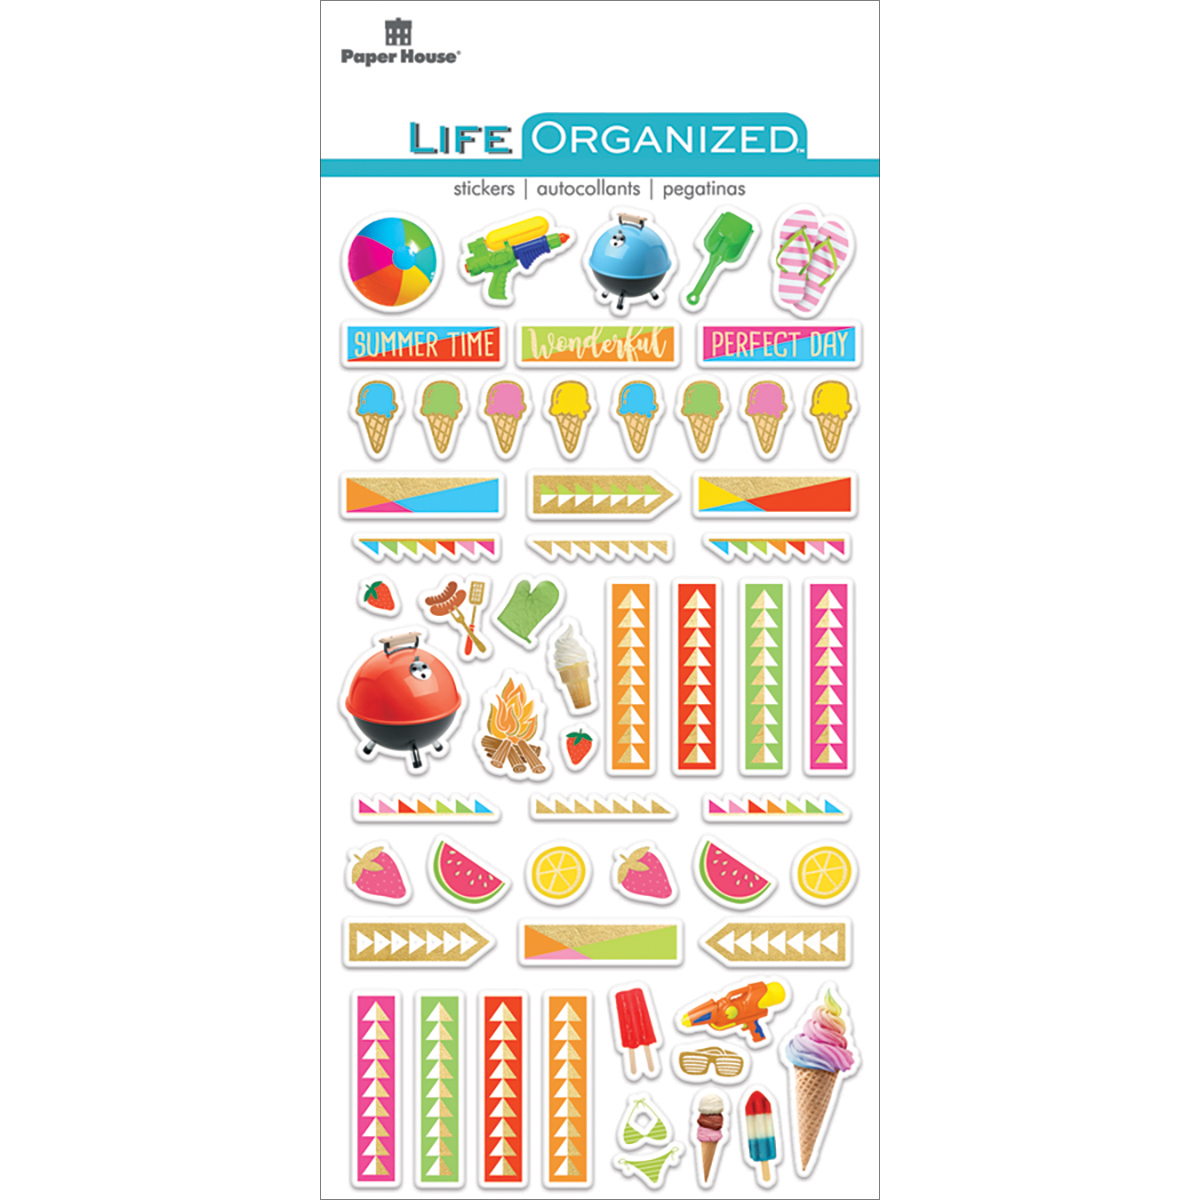 Summer Fun - Paper House Life Organized Epoxy Stickers 6.5